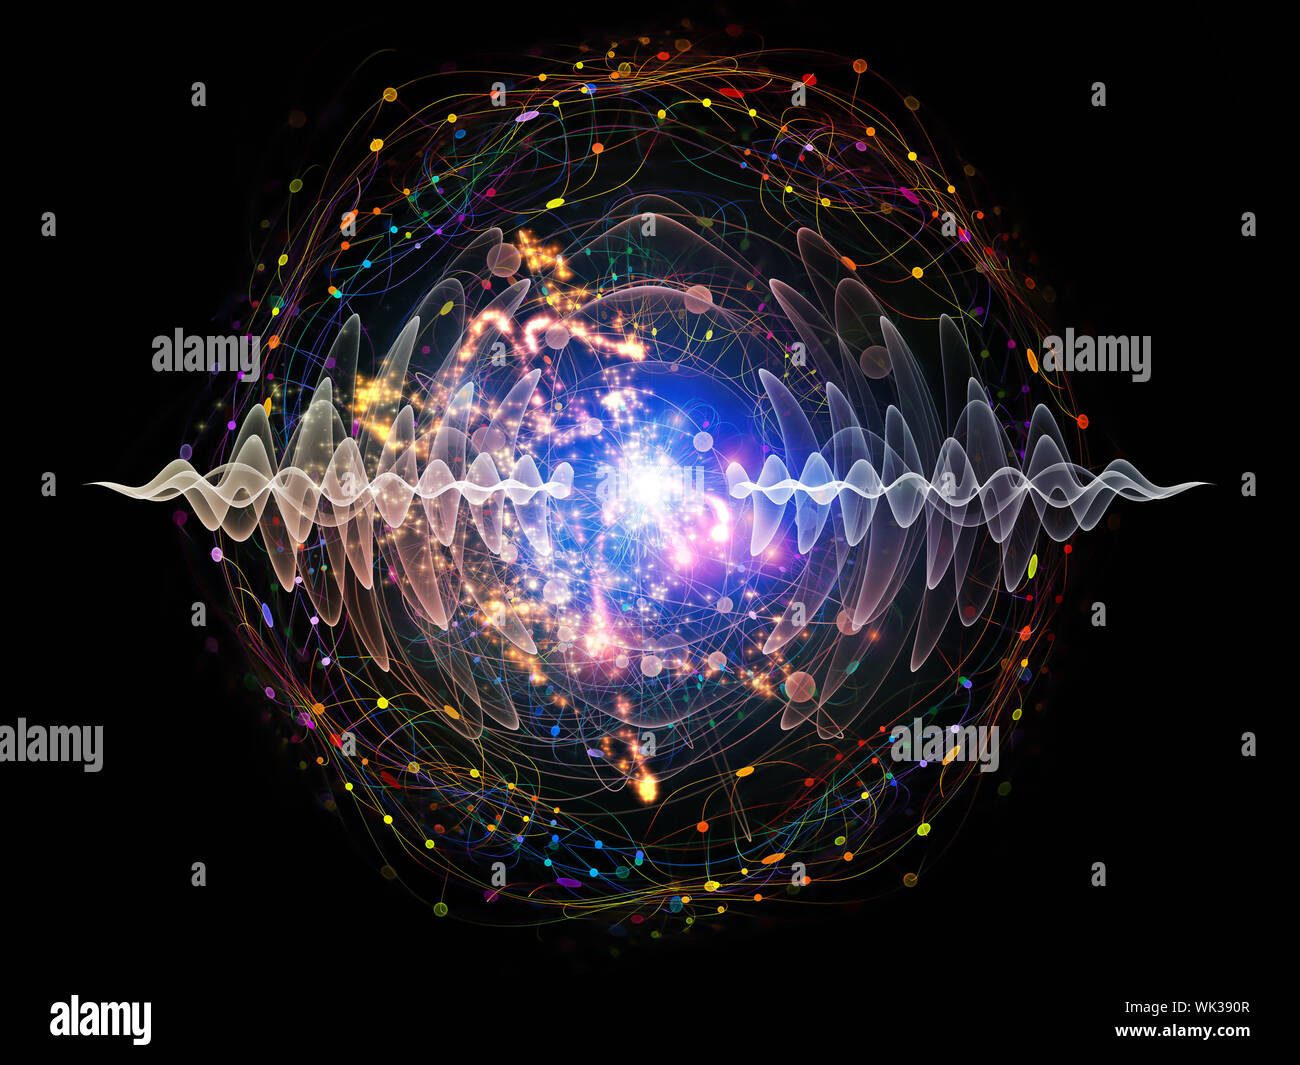 Elementary Particles series. Interplay of abstract fractal forms on the subject of nuclear physics, science and graphic design. Stock Photo